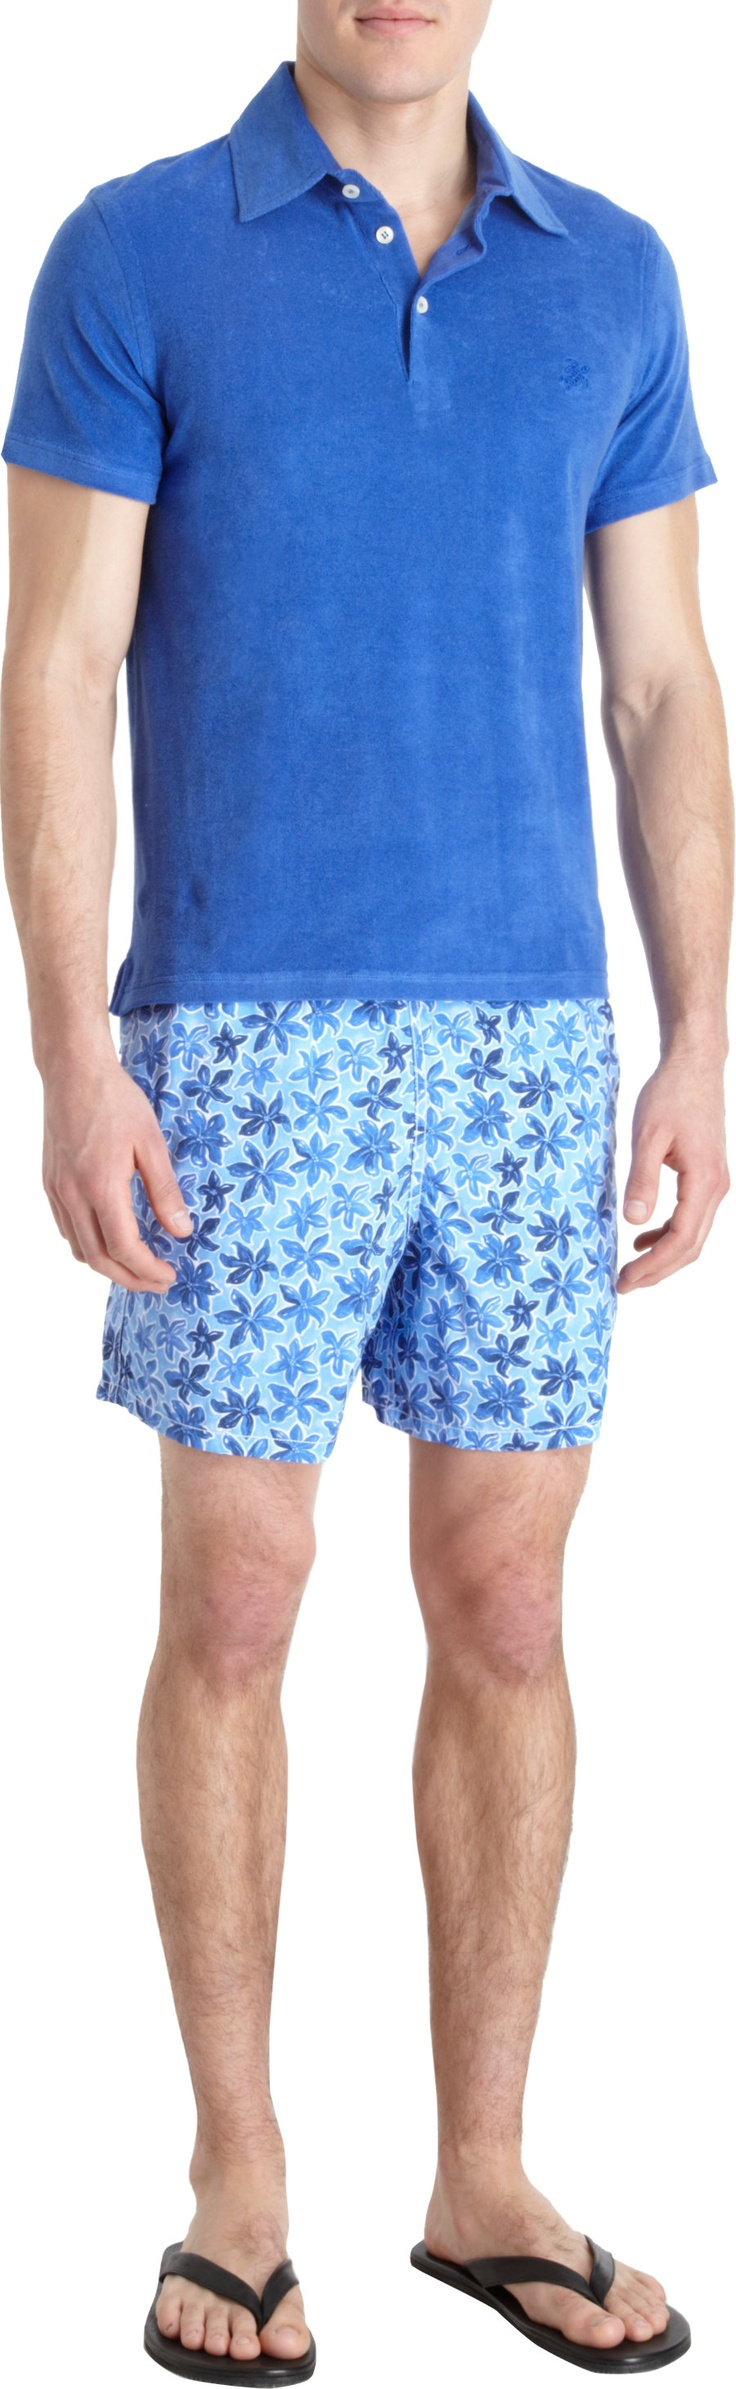 Beach Boys: VILEBREQUIN Painted Flower Swim Trunks